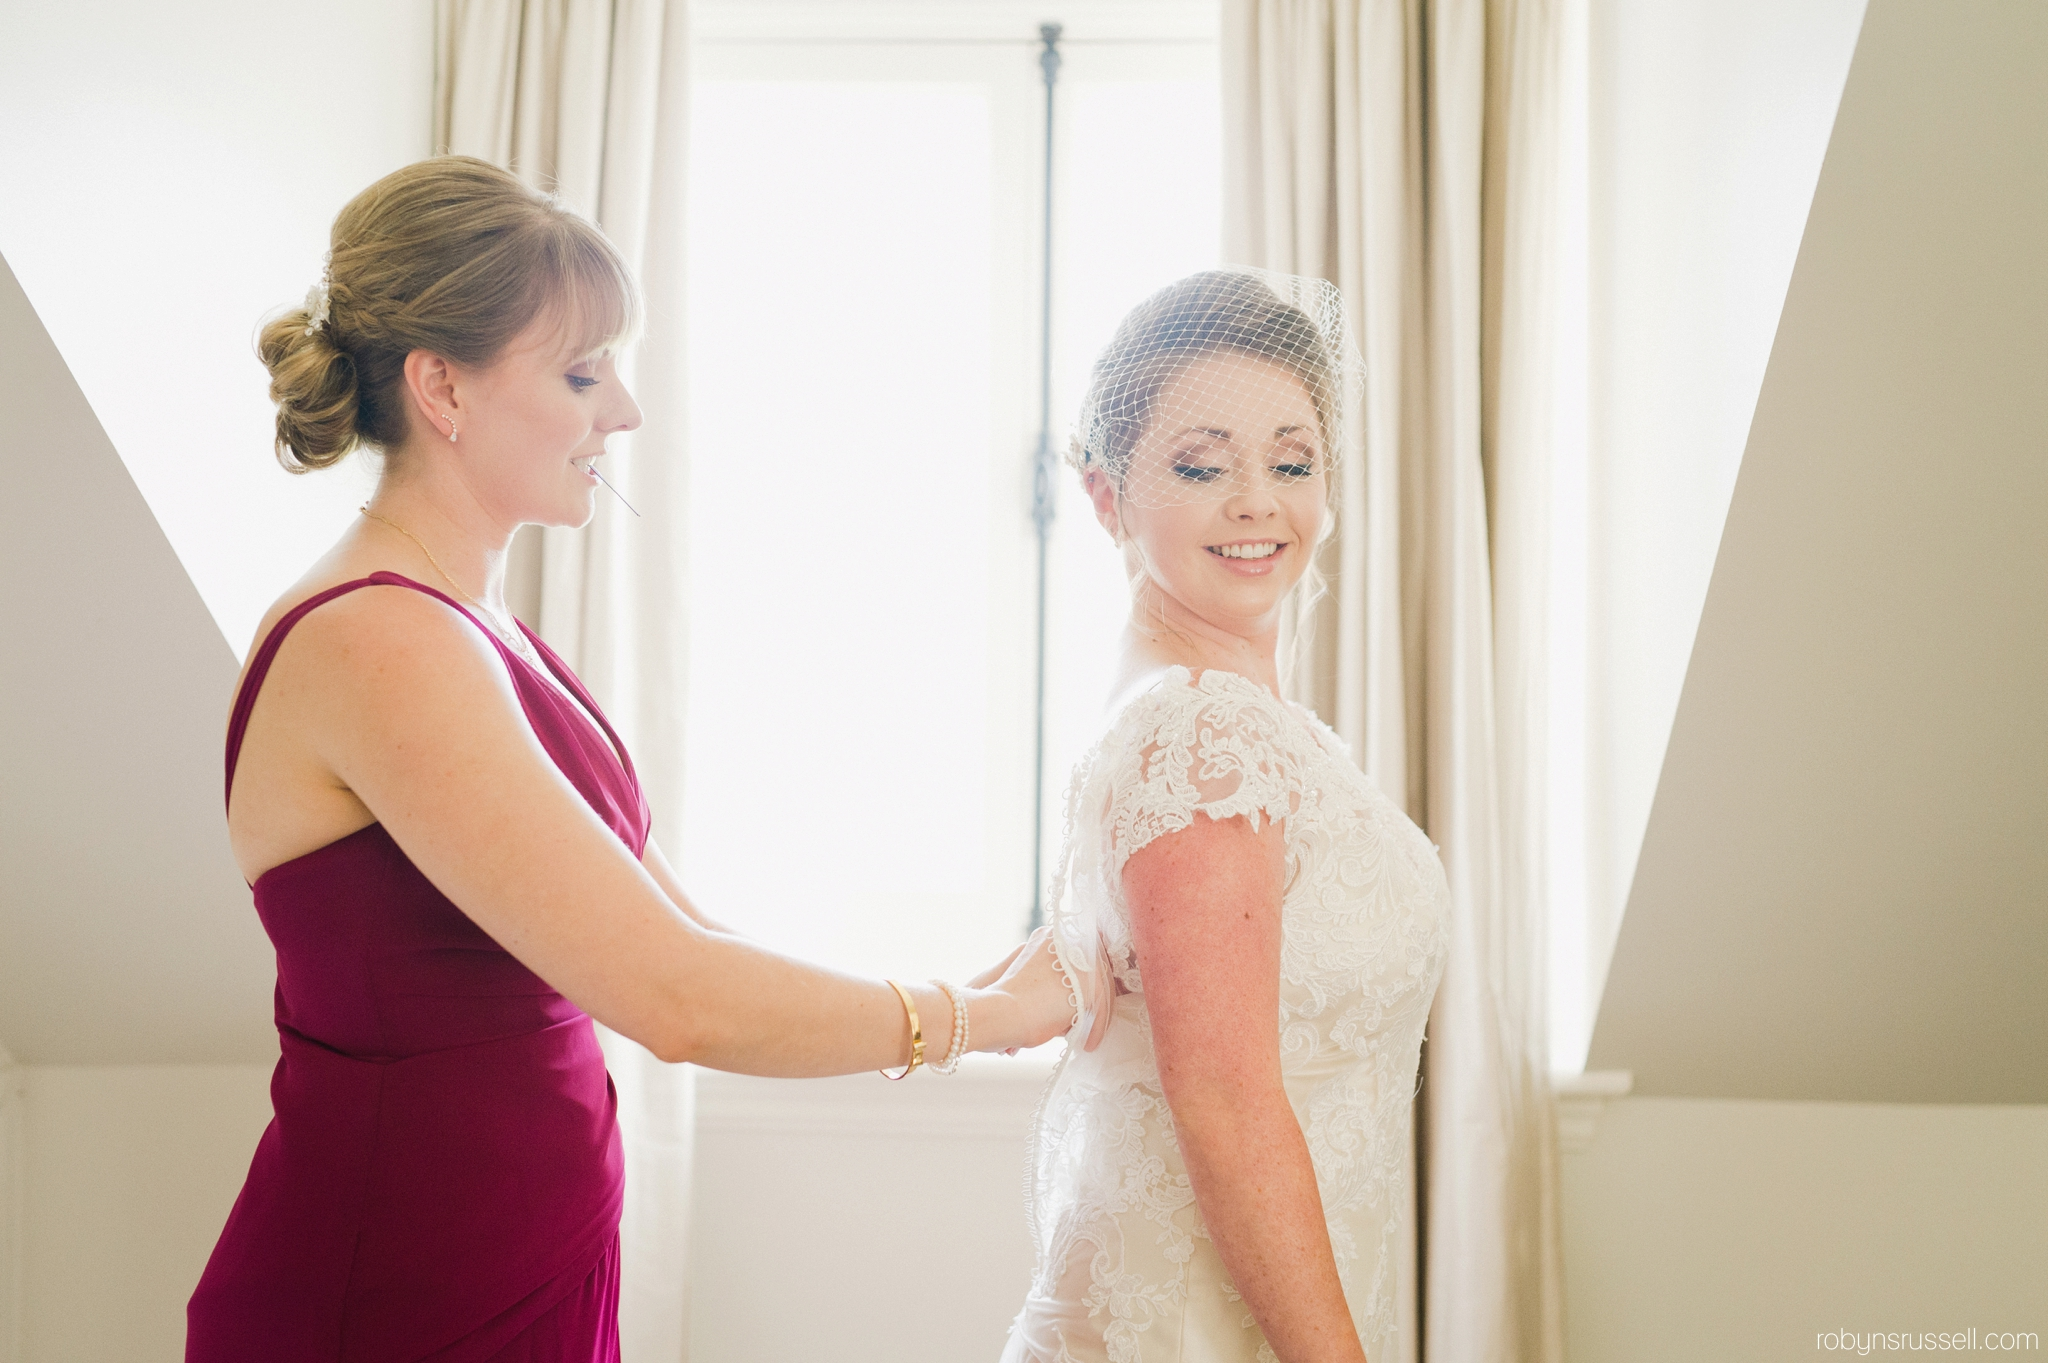 15-bride-and-maid-of-honour.jpg